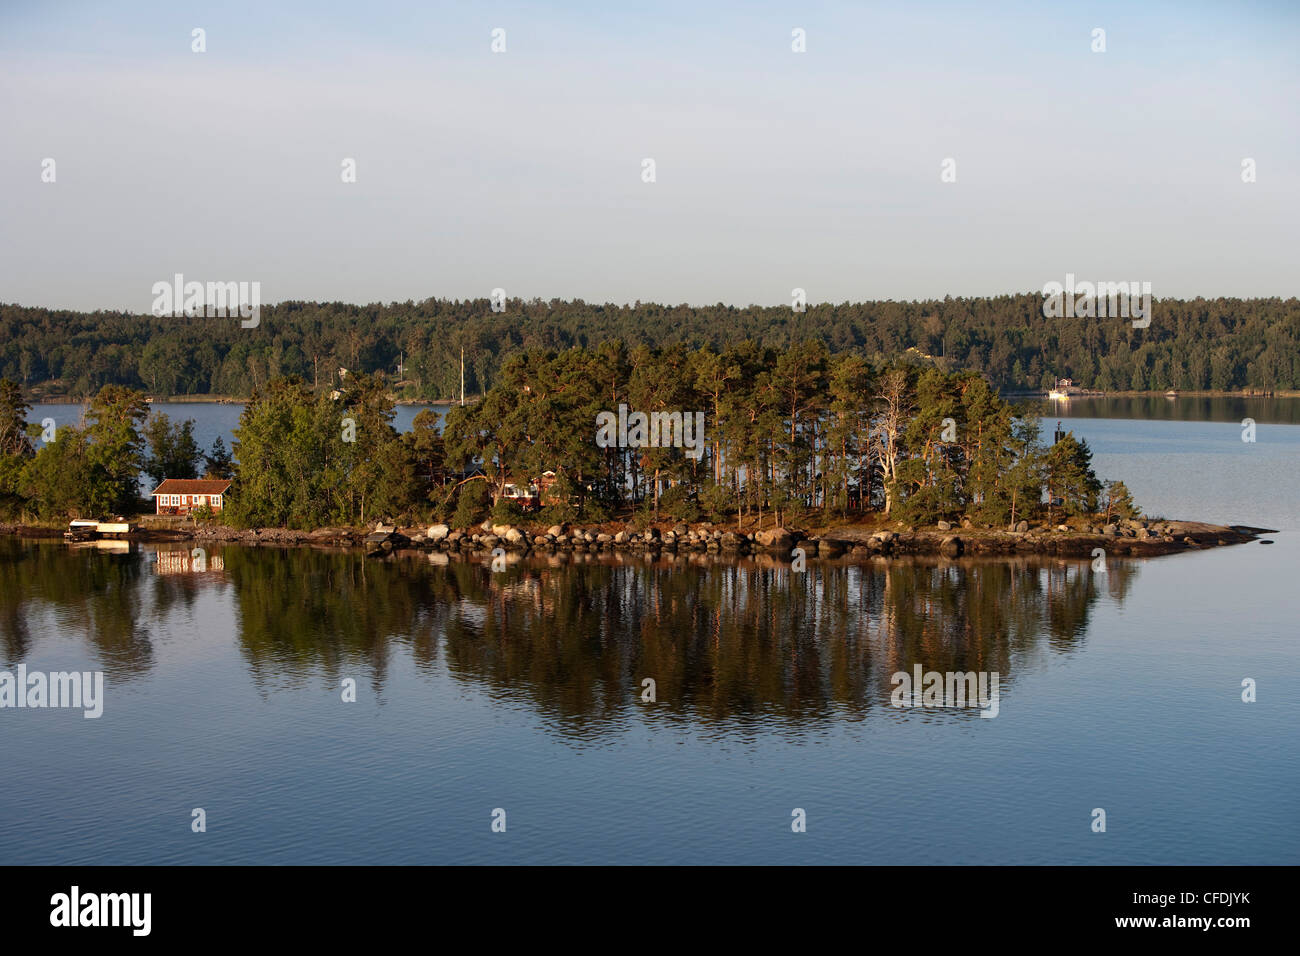 Houses on small island in Stockholm Archipelago, near Stockholm, Sweden - Stock Image